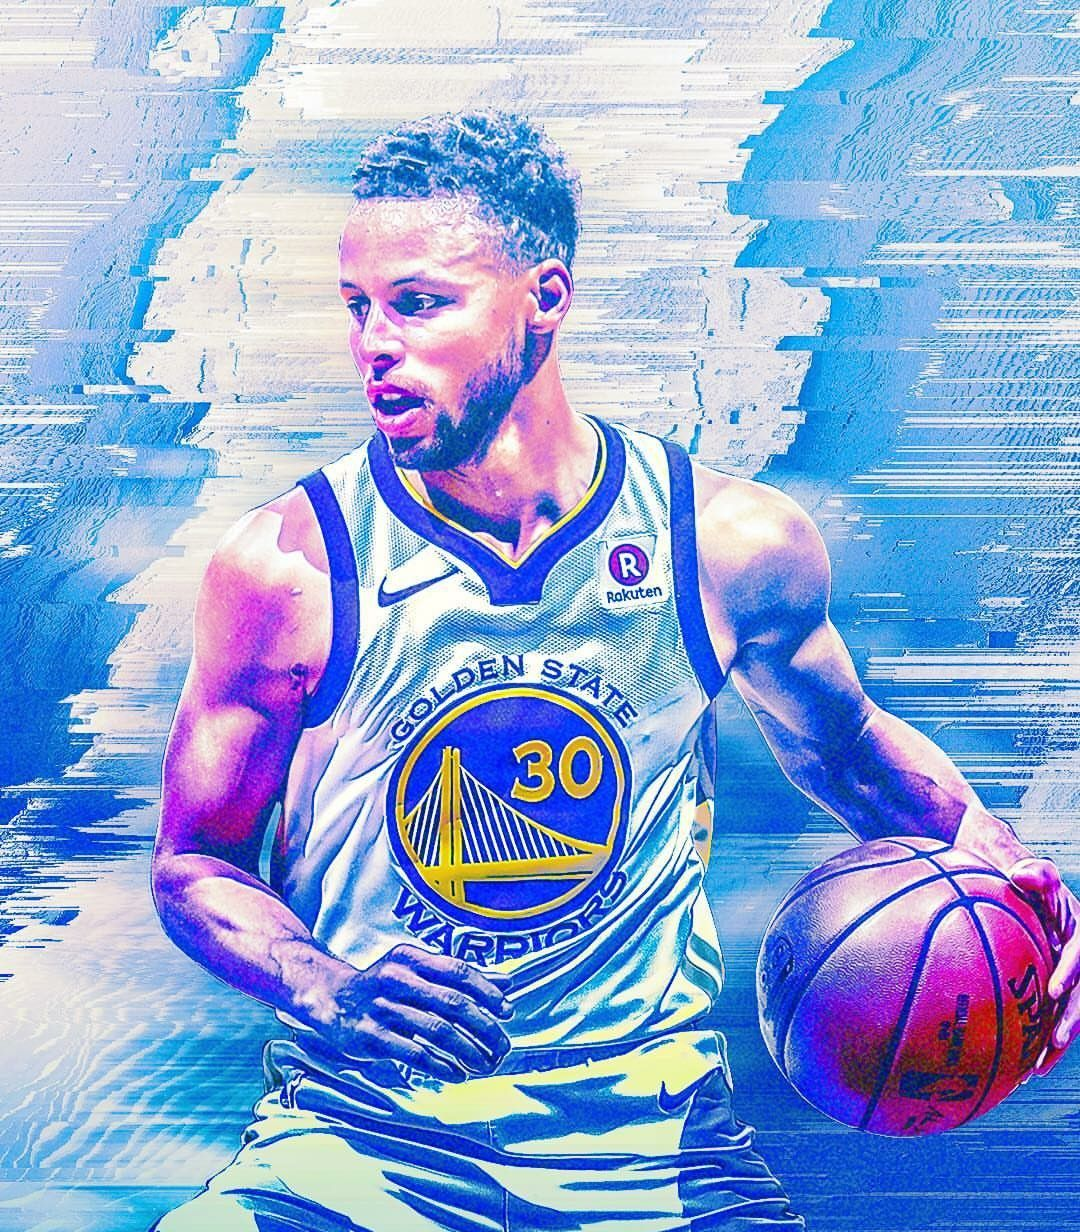 Stephen Curry Nba Stephen Curry Stephen Curry Basketball Stephen Curry